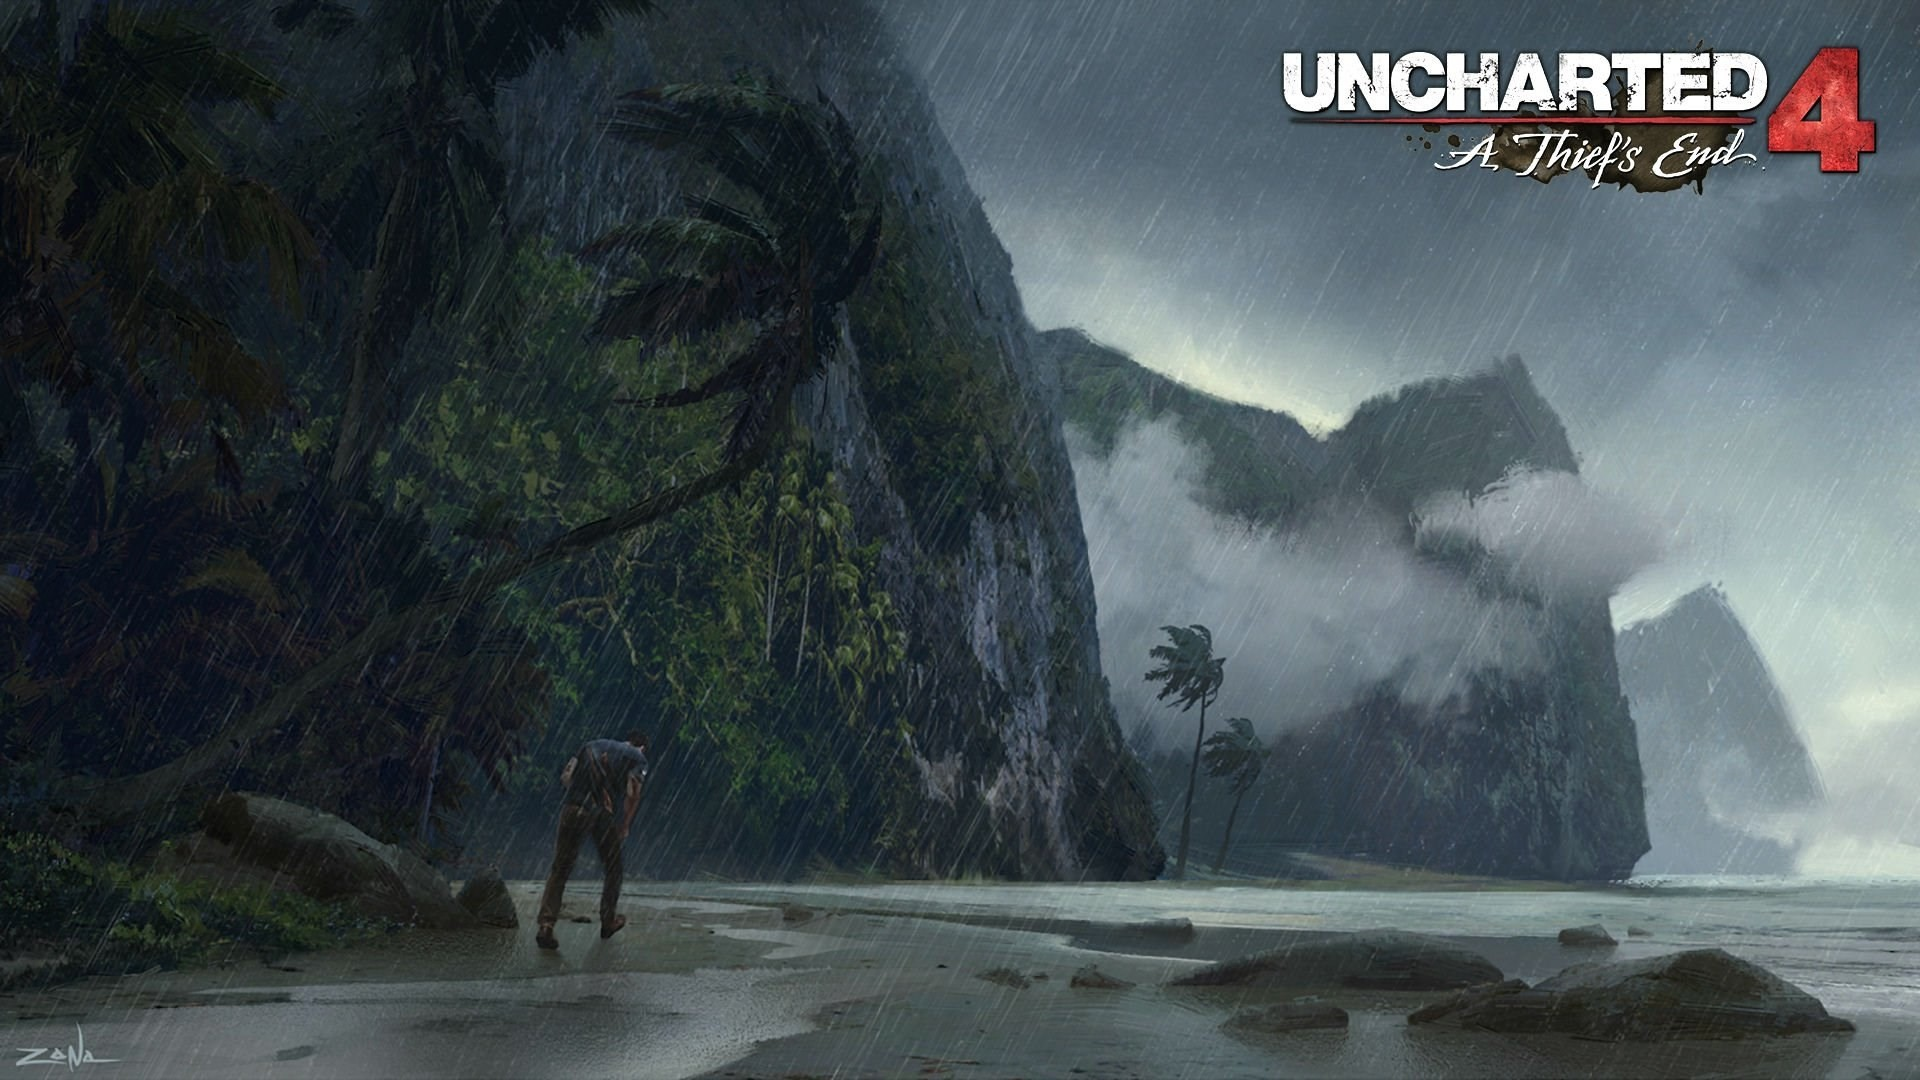 uncharted 4 a thiefs end backround – Full HD Wallpapers, Photos by Sedona  Turner (